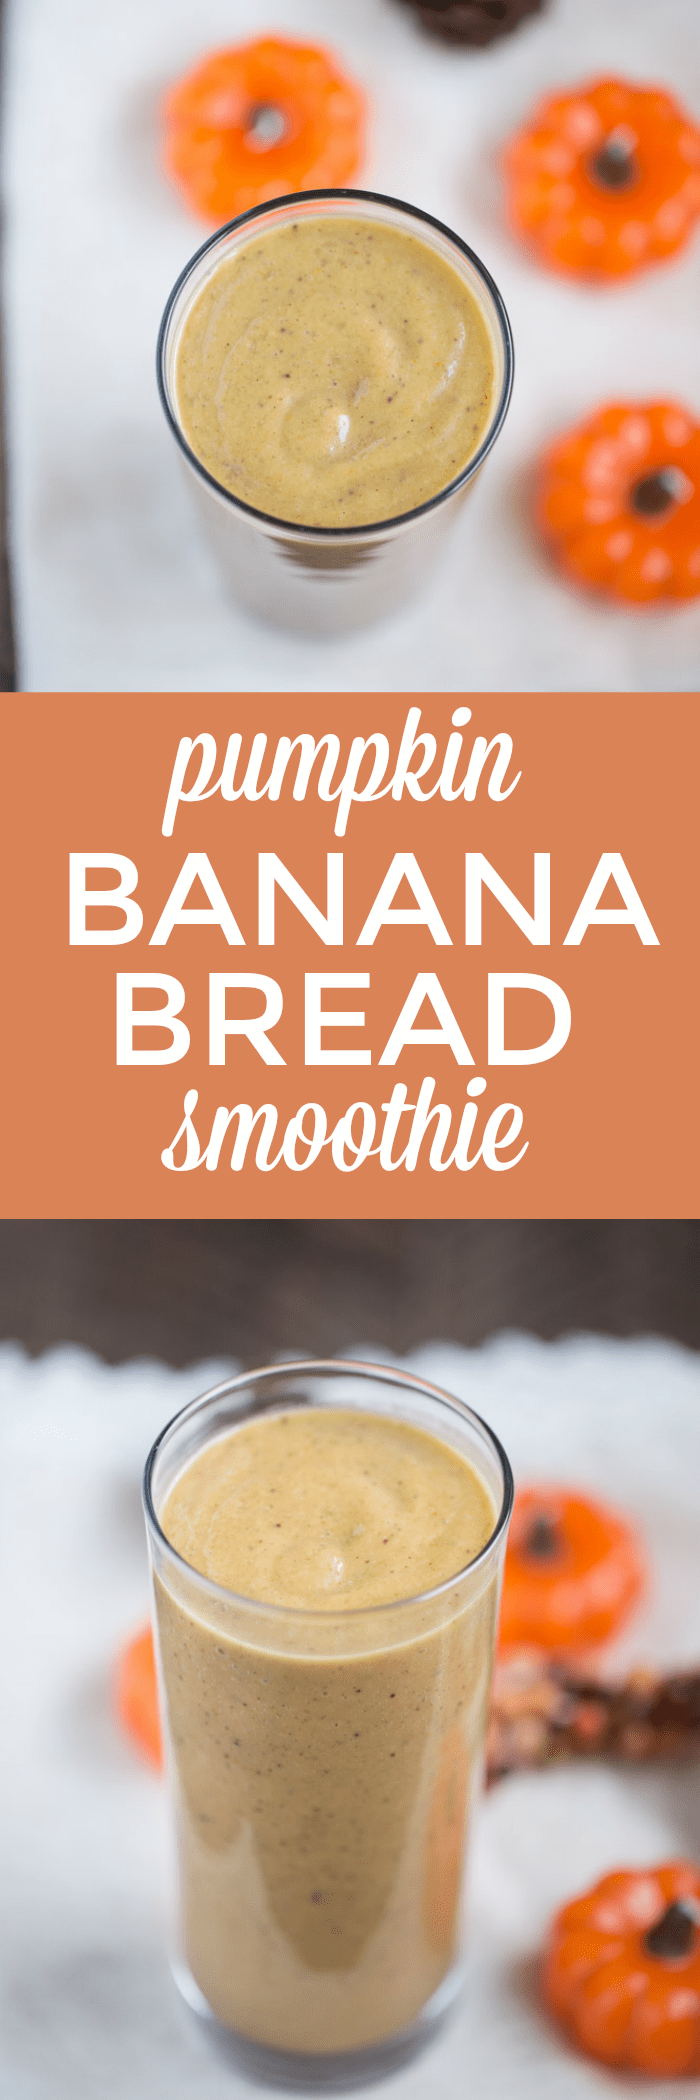 This Pumpkin Banana Bread Smoothie is thick and creamy and actually tastes like banana bread! The not so secret ingredient? FIGS!